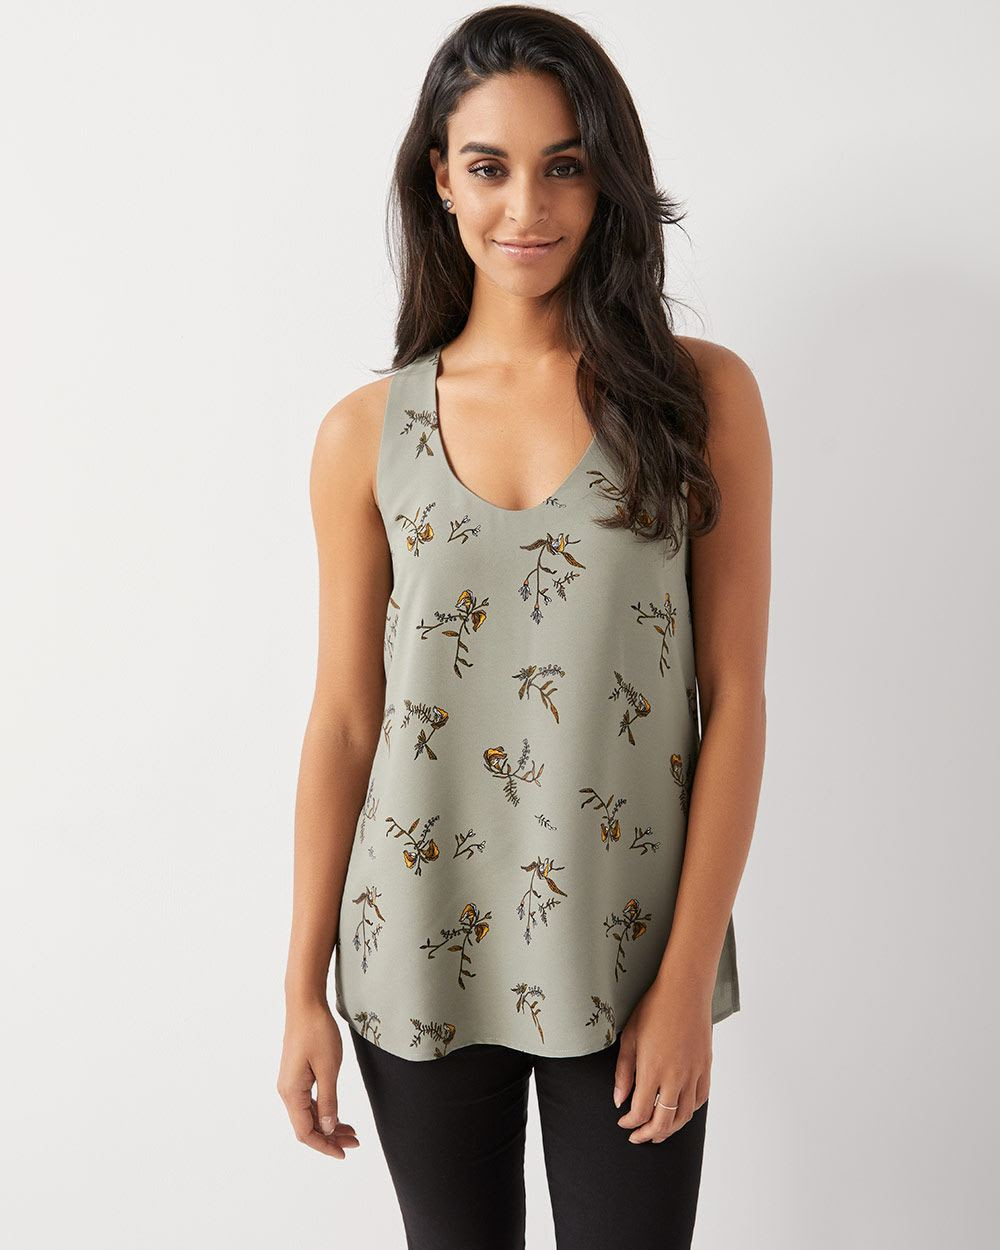 dbf7a80f8d C G Printed silky crepe sleeveless tunic blouse